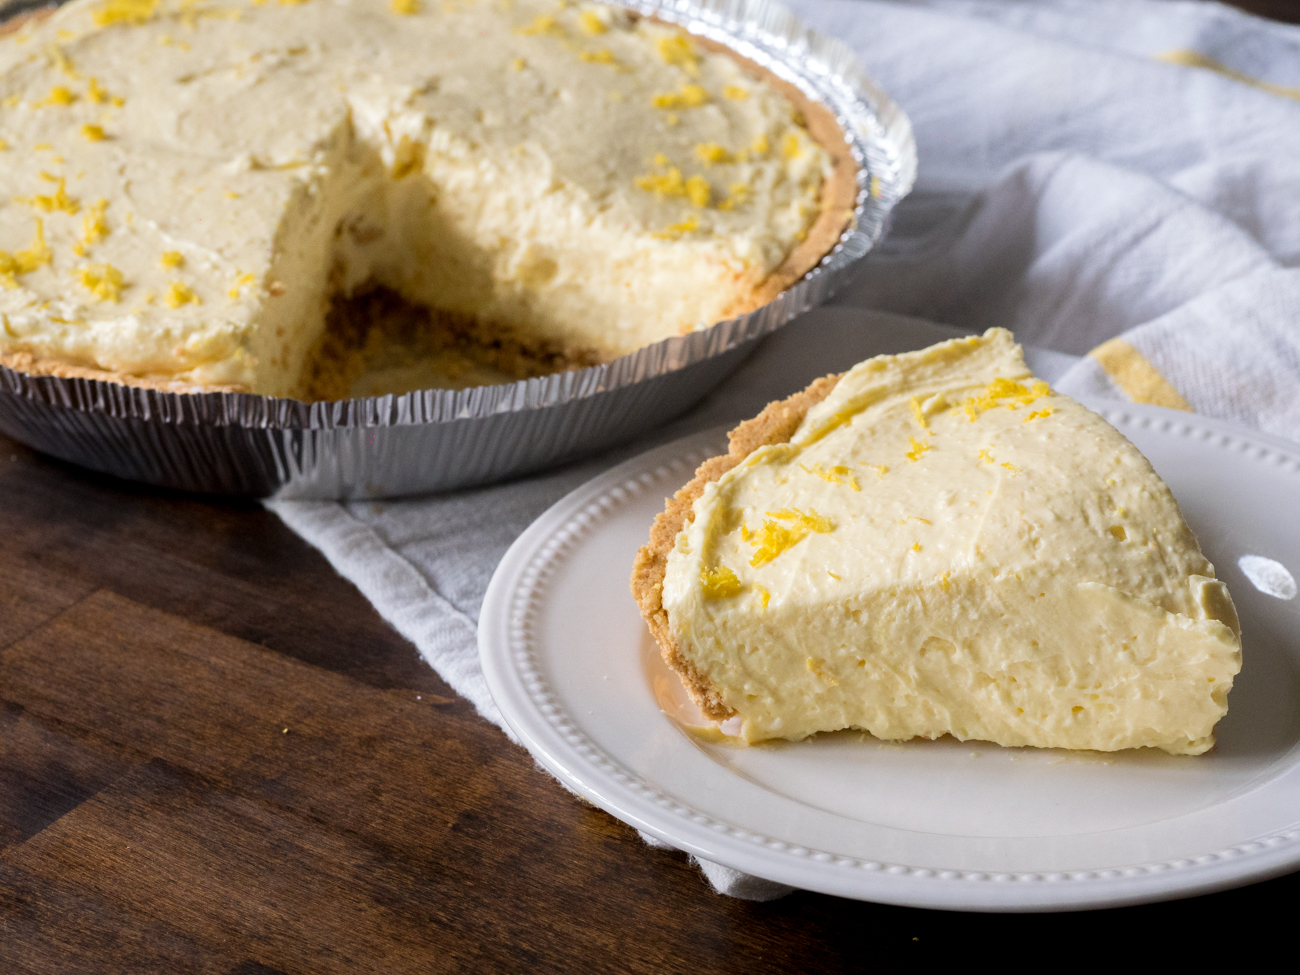 Cream Cheese Lemonade Pie Horizontal 2